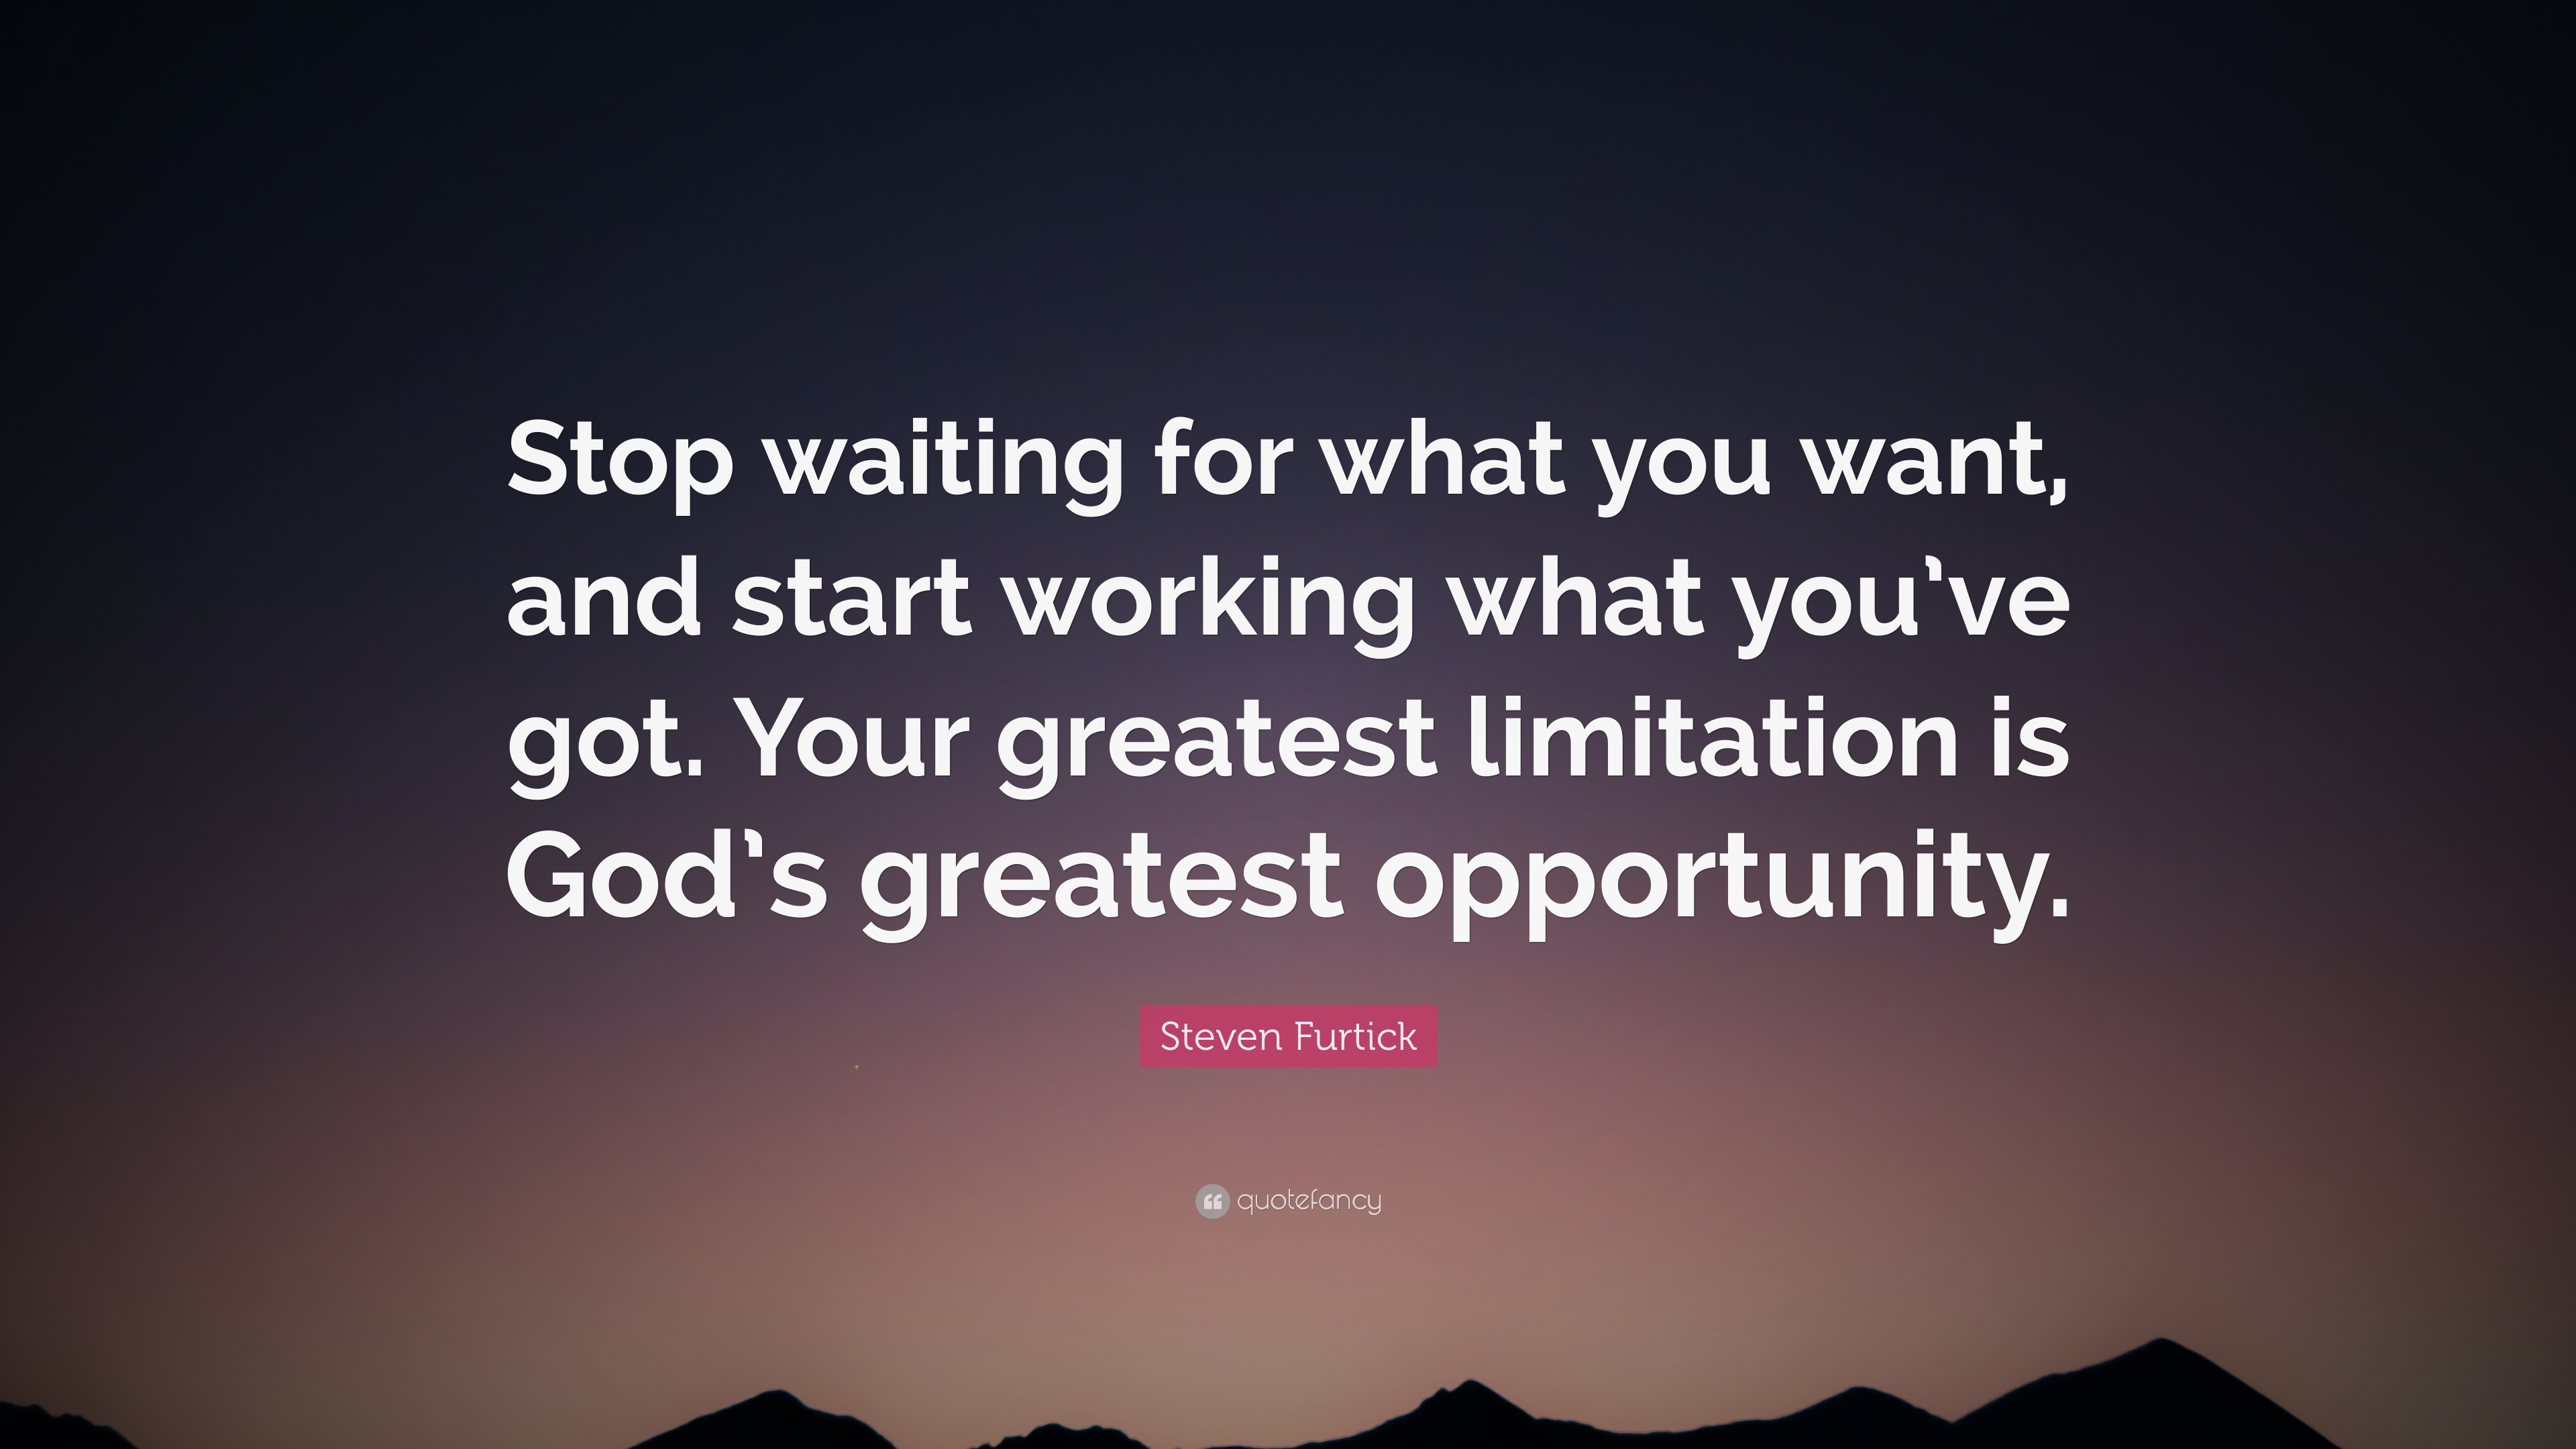 Steven furtick quotes 85 wallpapers quotefancy - Stop wishing start doing hd wallpaper ...